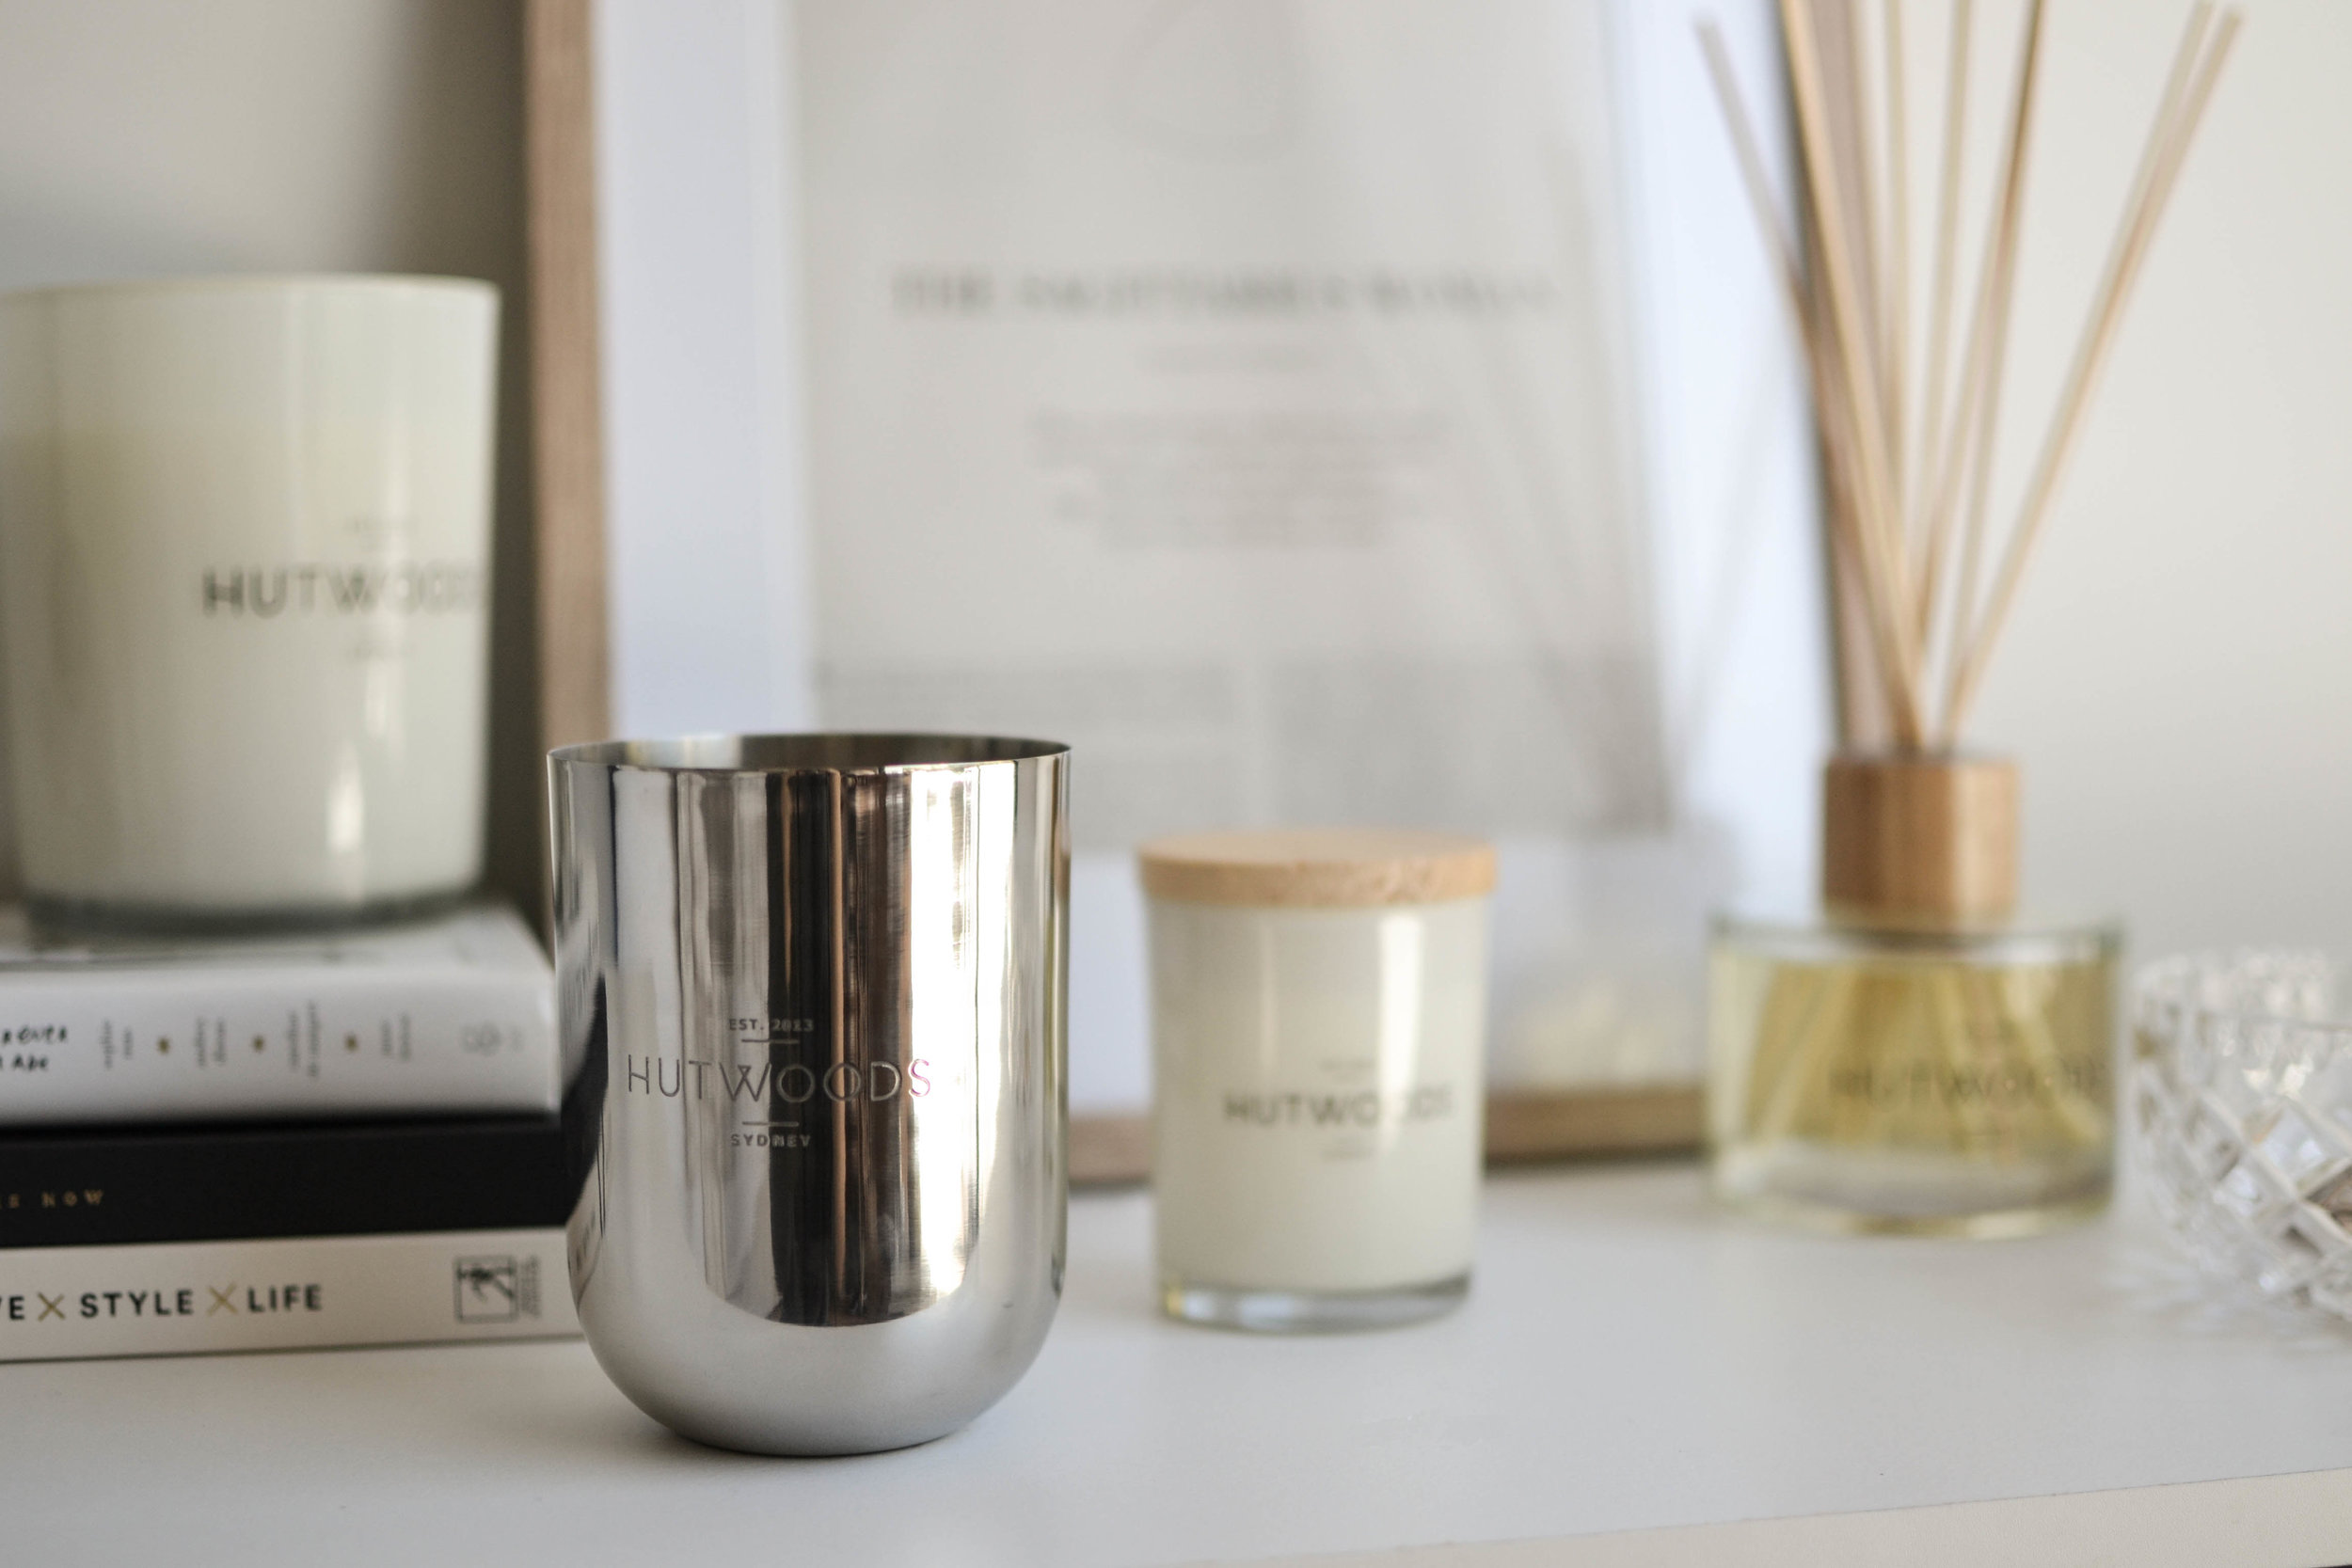 The Eve Hutwoods Candles